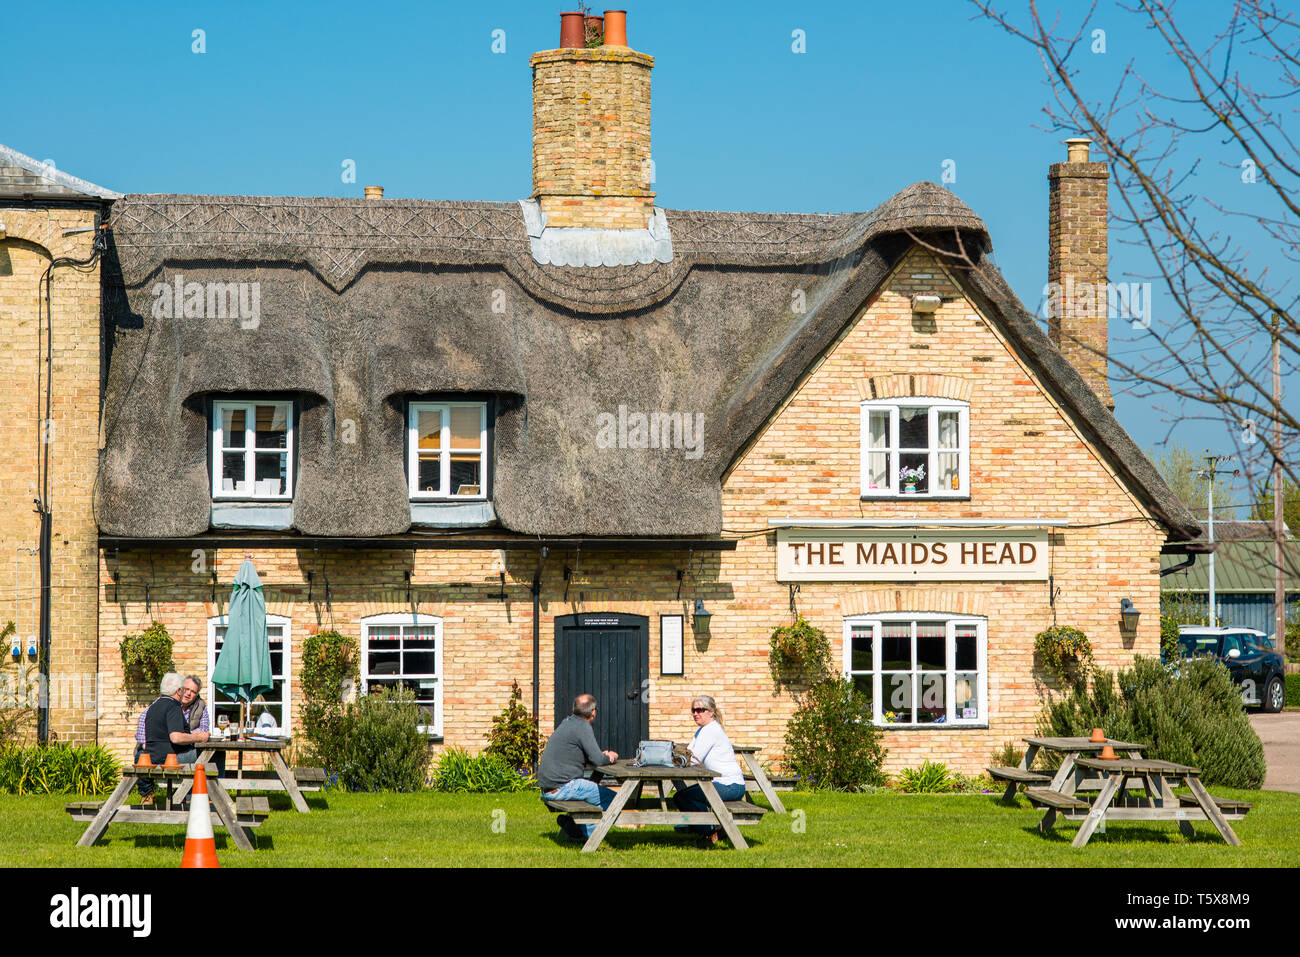 Characterful Wicken Village pub close to Wicken Fen, Cambridgeshire, England, UK. - Stock Image